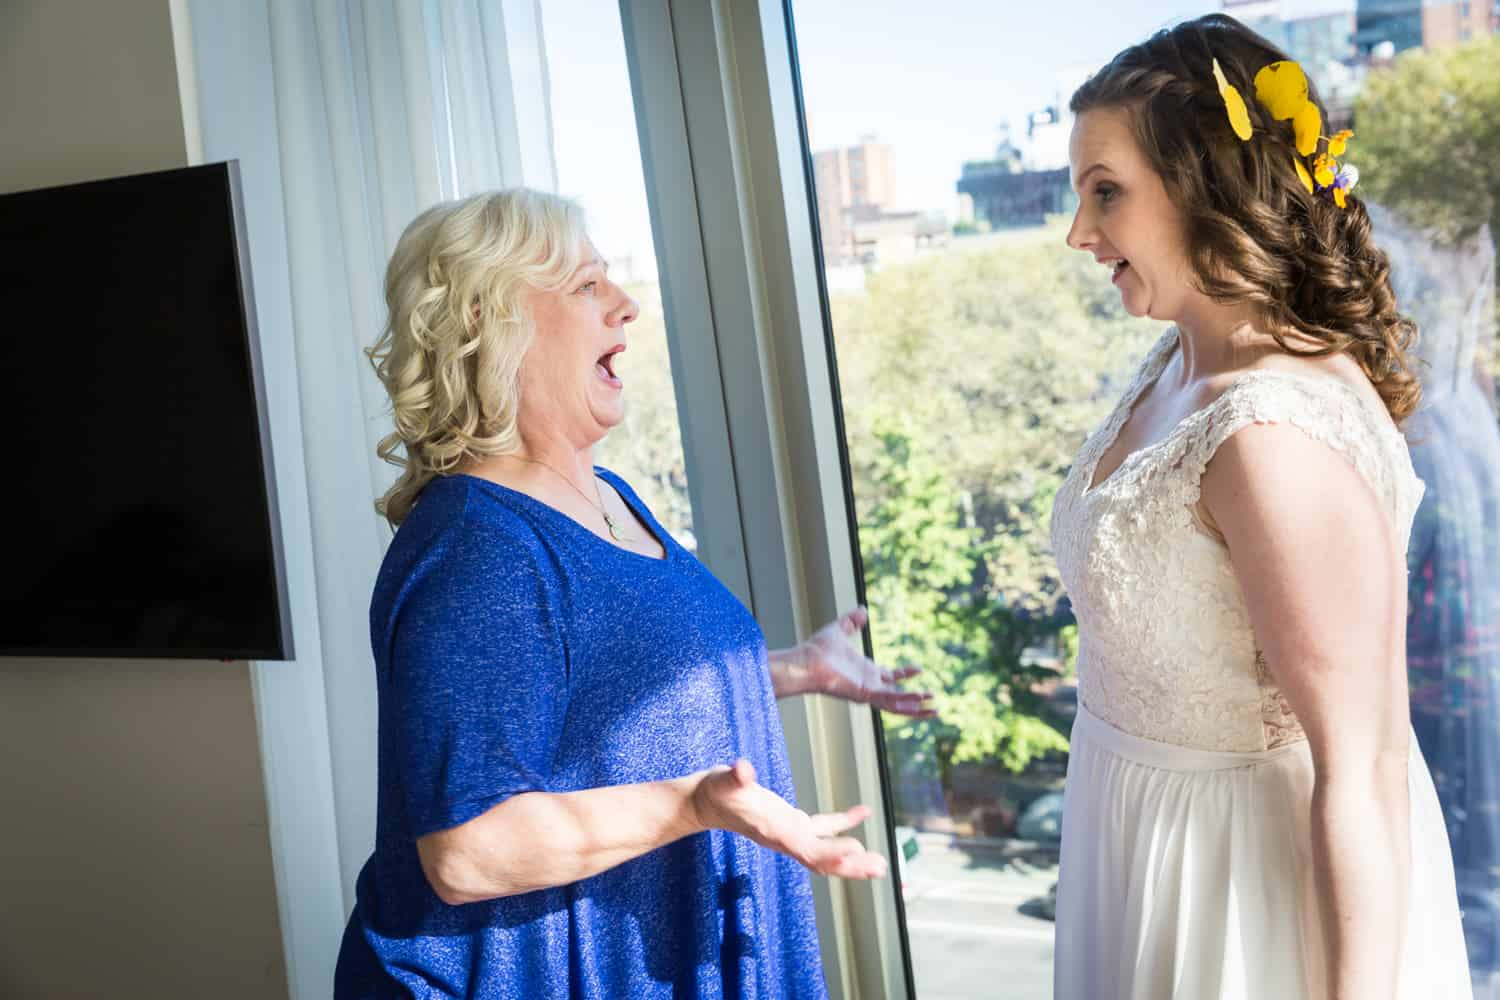 Mother of the bride seeing bride in wedding dress for the first time